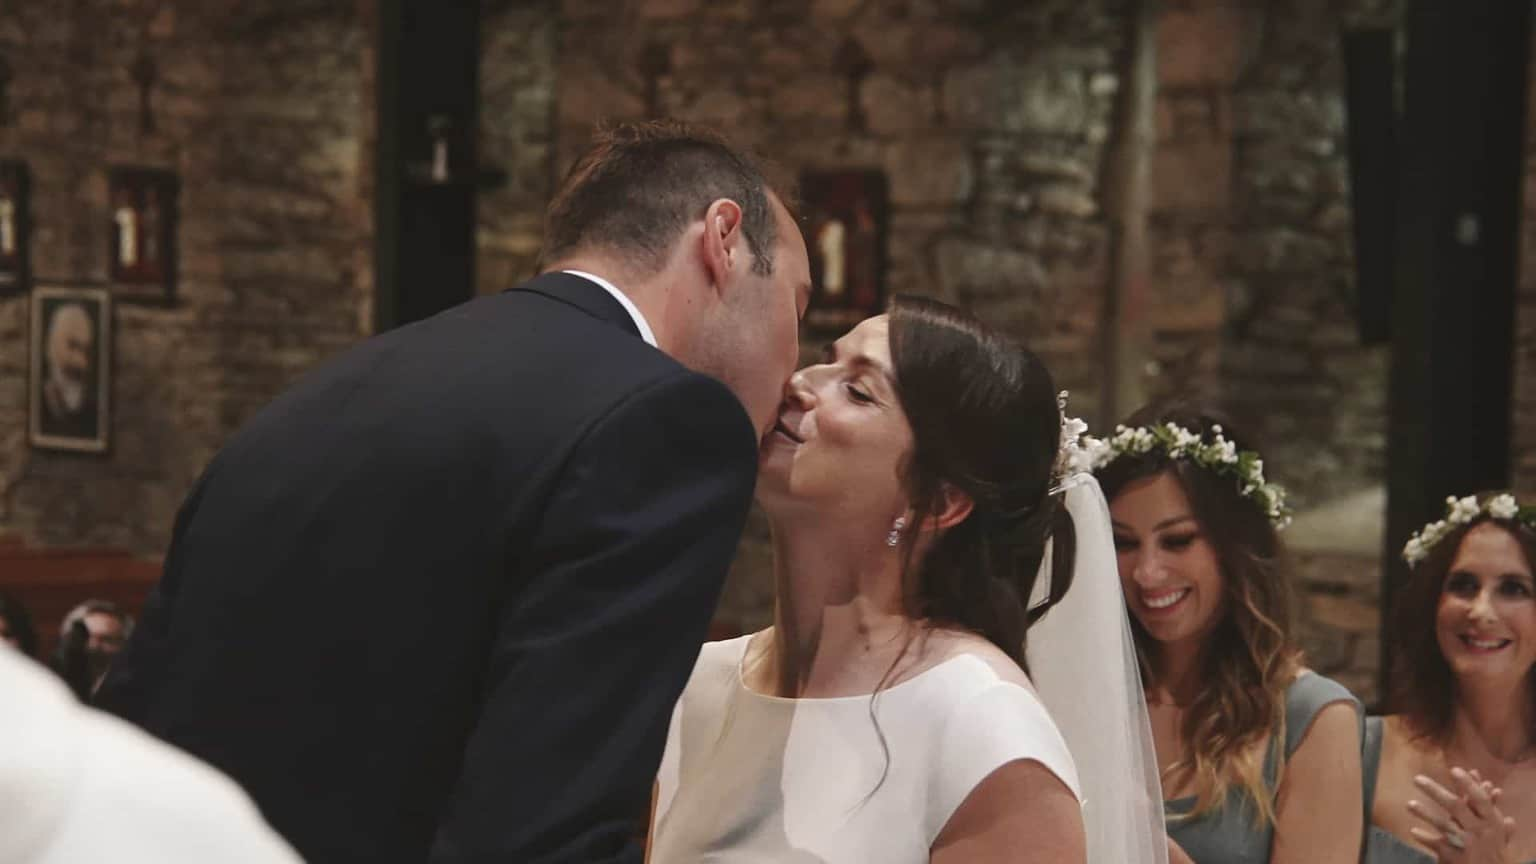 First kiss after vows.